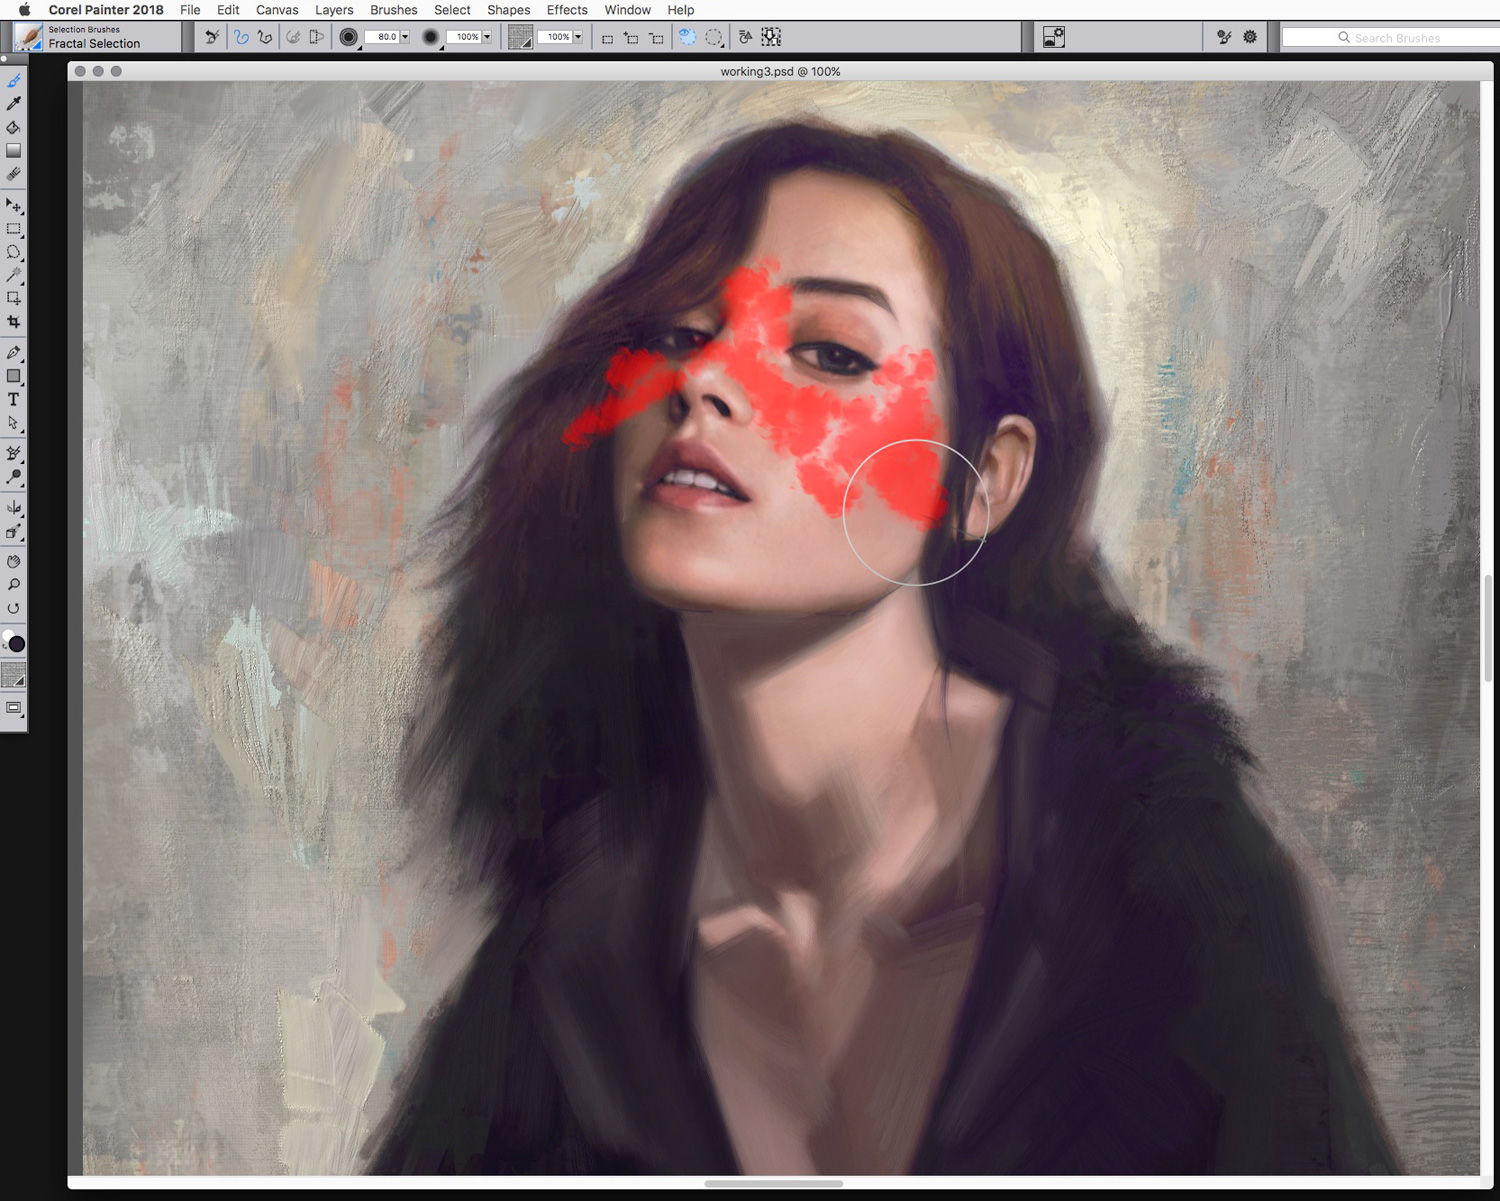 How To Make A Canvas Painting In Photoshop